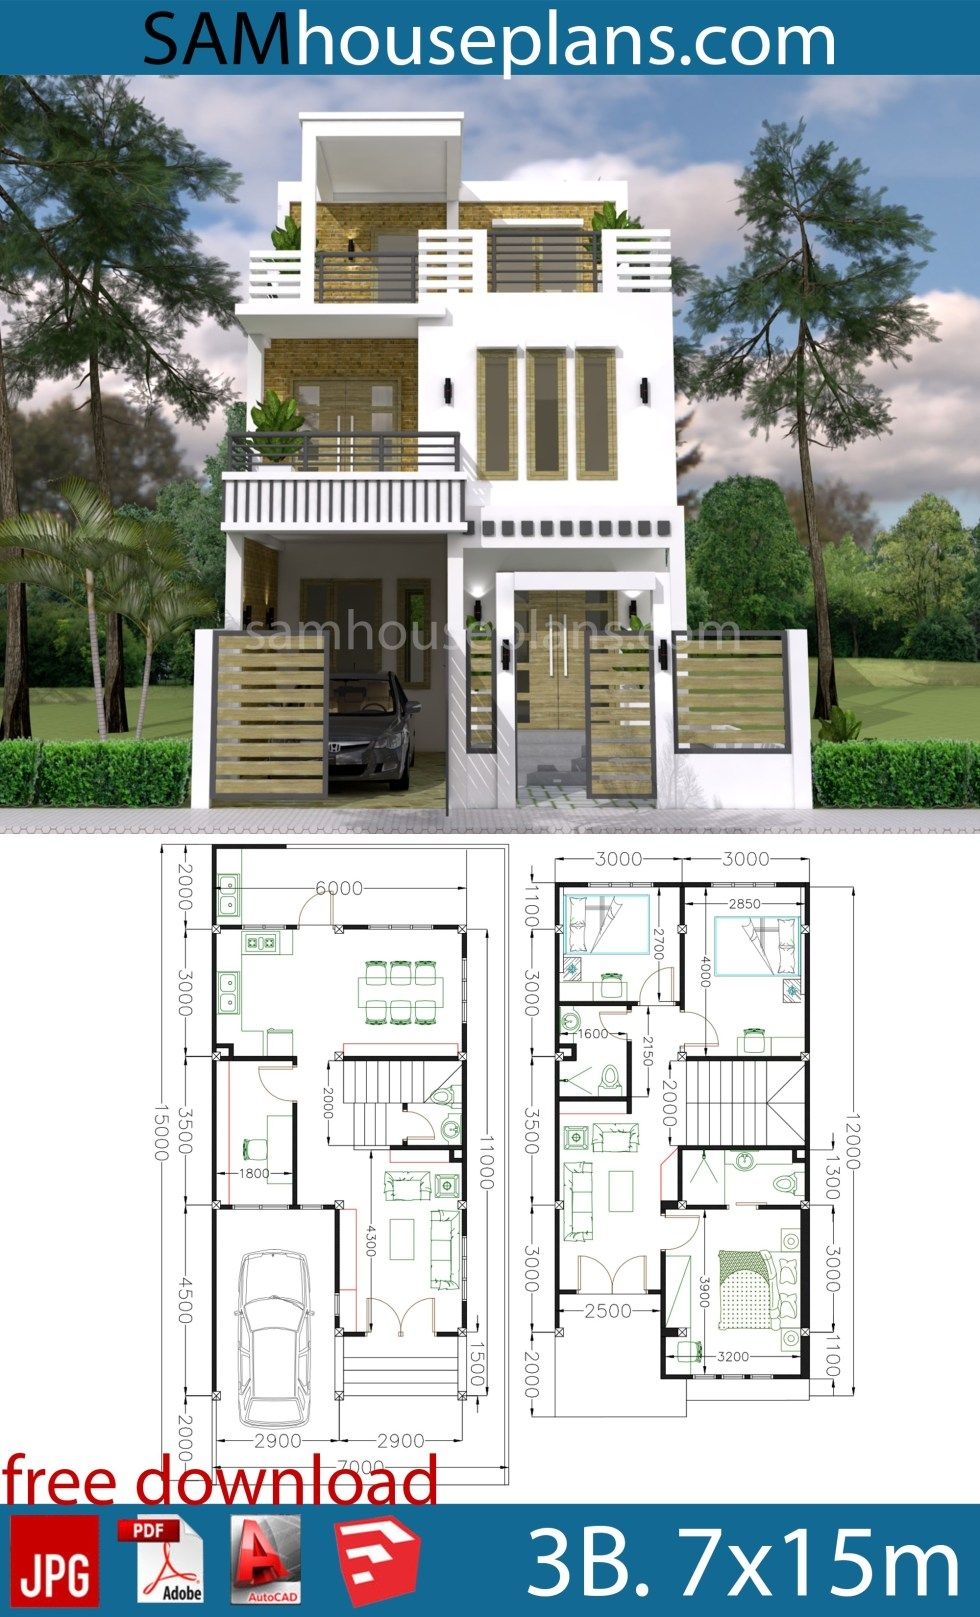 House Plans 7x15m With 3 Bedrooms In 2020 Philippines House